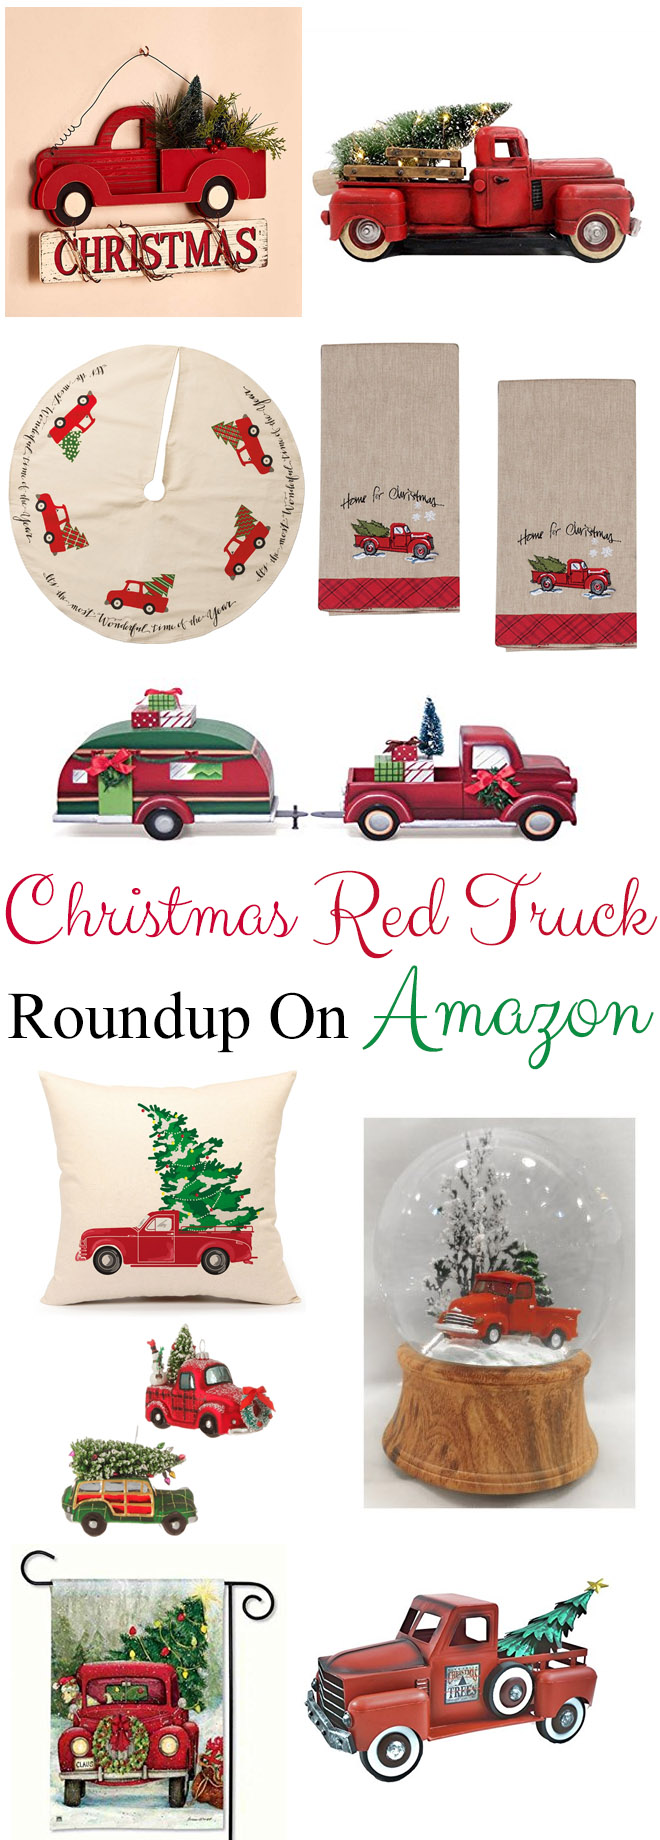 of christmas red truck decor available there if you dont see something you like below click here to see all the red truck decor amazon has to offer